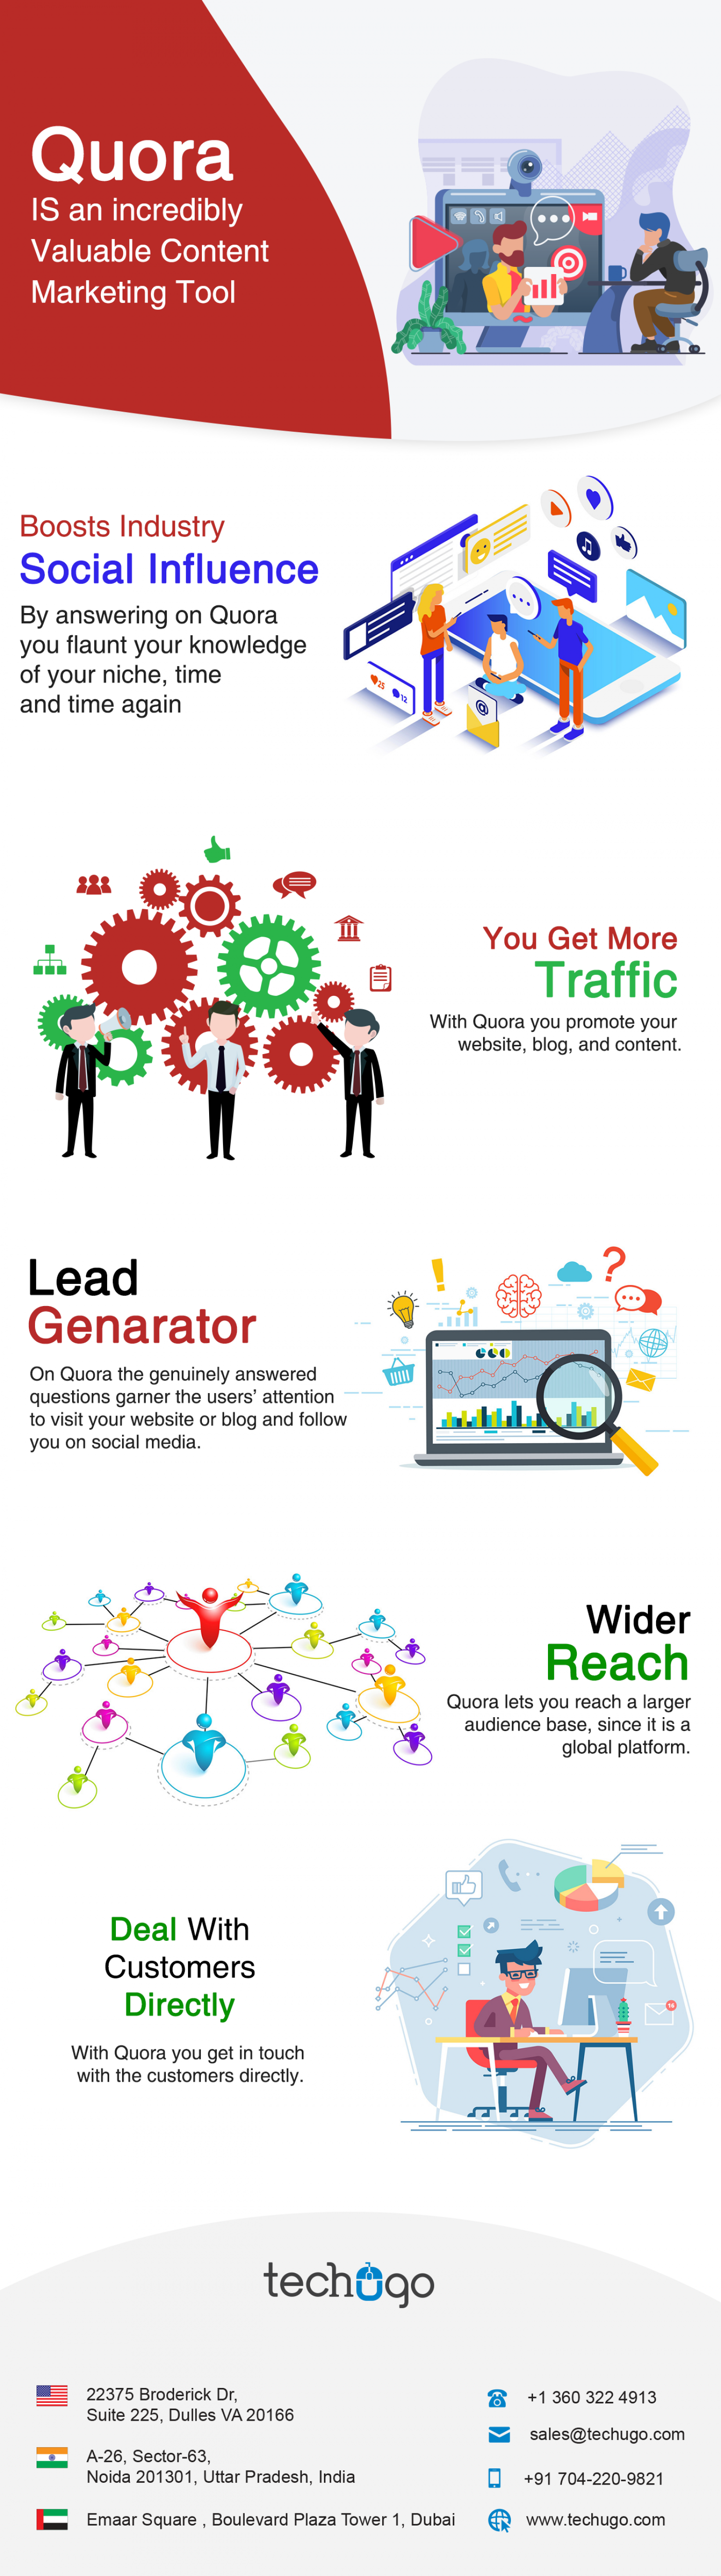 Quora IS an incredibly valuable content marketing tool Infographic